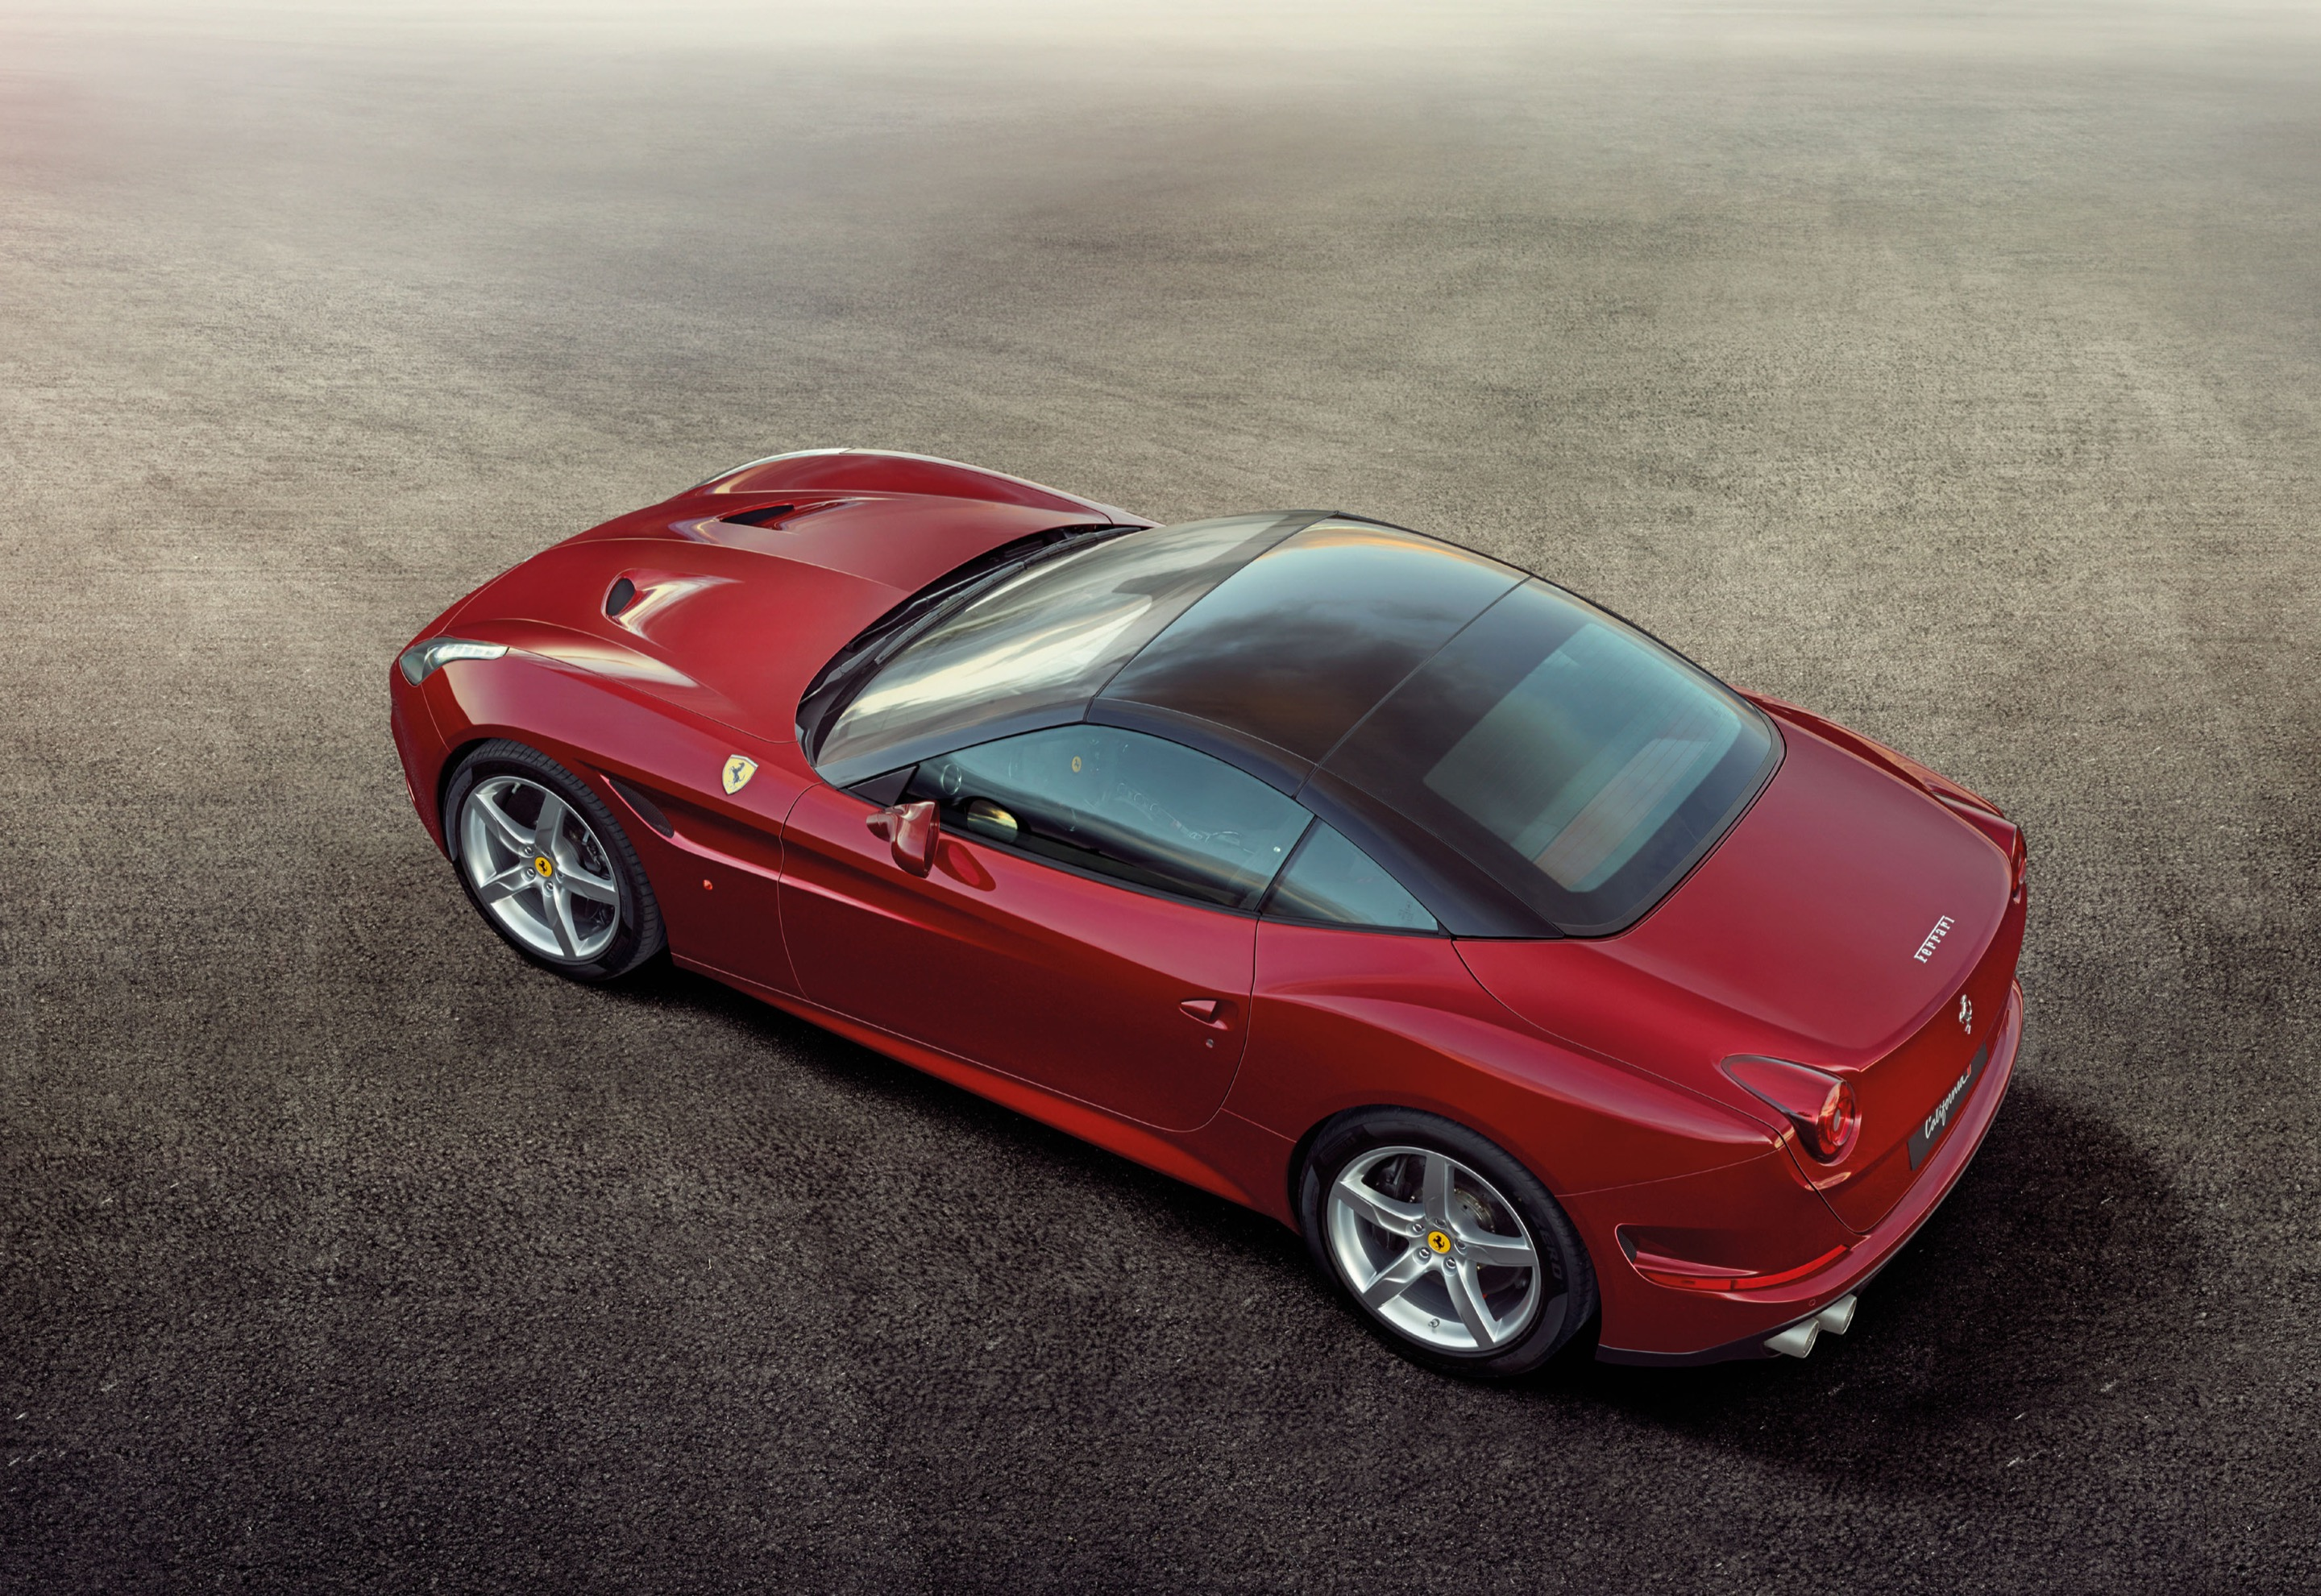 2016 Ferrari California Review, Ratings, Specs, Prices, and Photos ...